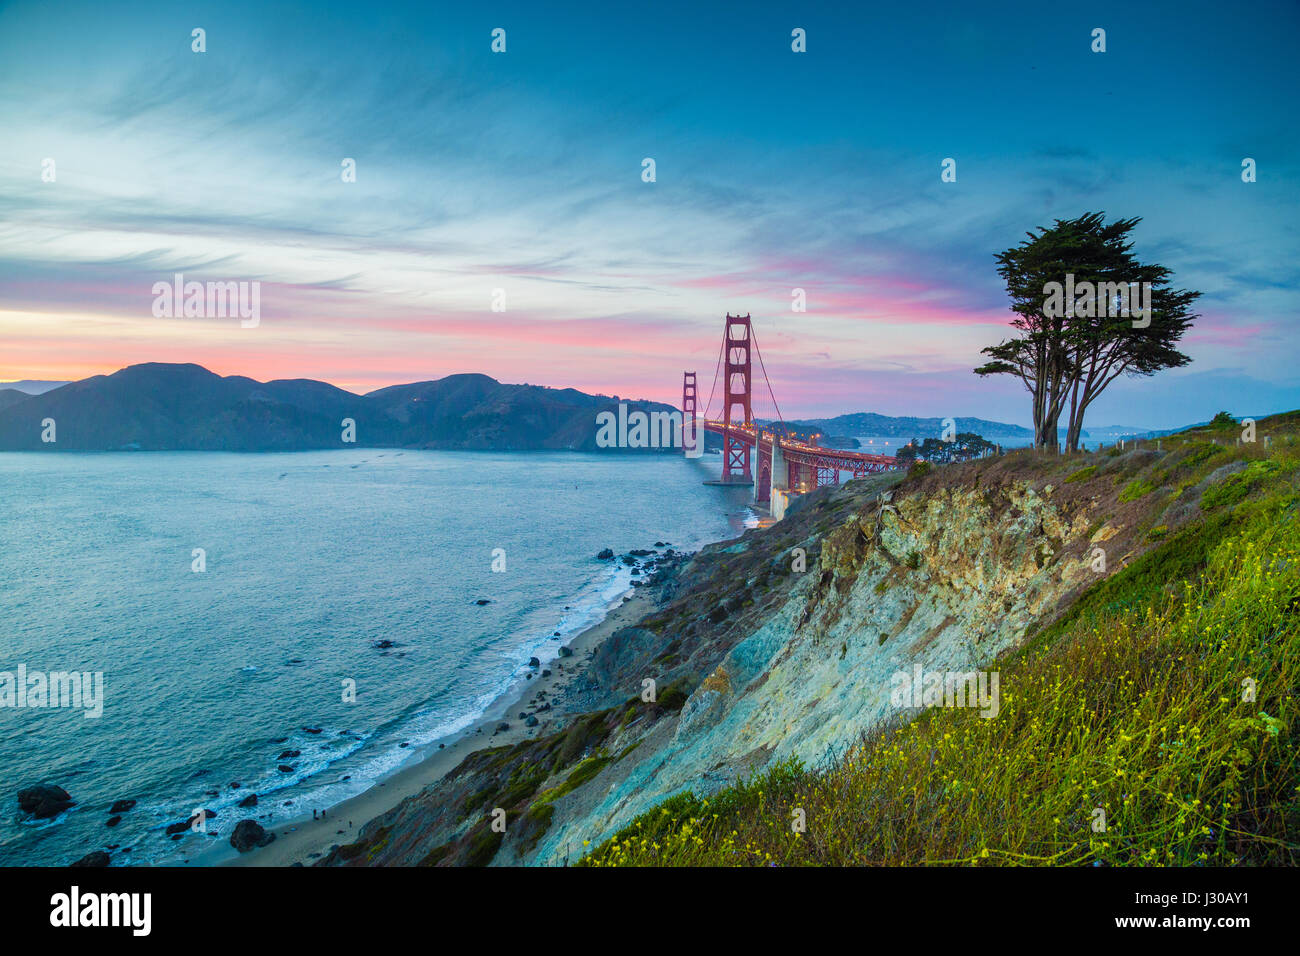 Classic panorama view of famous Golden Gate Bridge seen from scenic Baker Beach in beautiful post sunset twilight - Stock Image